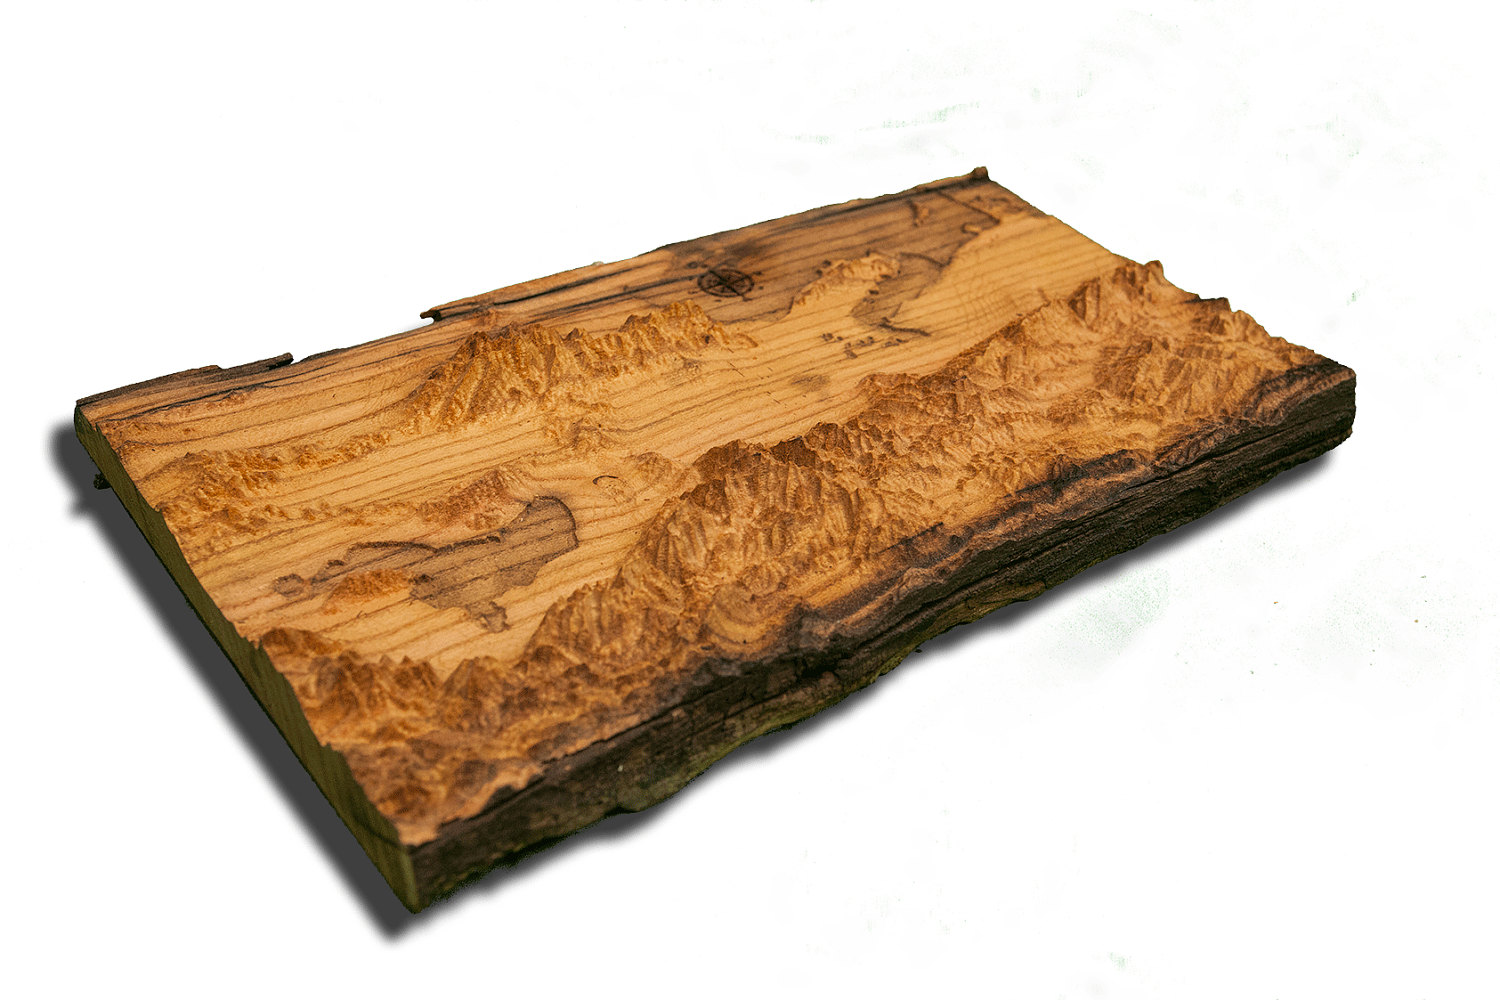 map of park city utah ski areas with Salt Lake City Utah Area Topographical Map From A Natural Live Edge Wood Slab California Vintage Rustic Fine Art One Of A Kind Piece on Park City Real Estate Maps also Utah Ski Areas Poster Map together with C map in addition Skischoolscreche besides Utahfieldhouse.